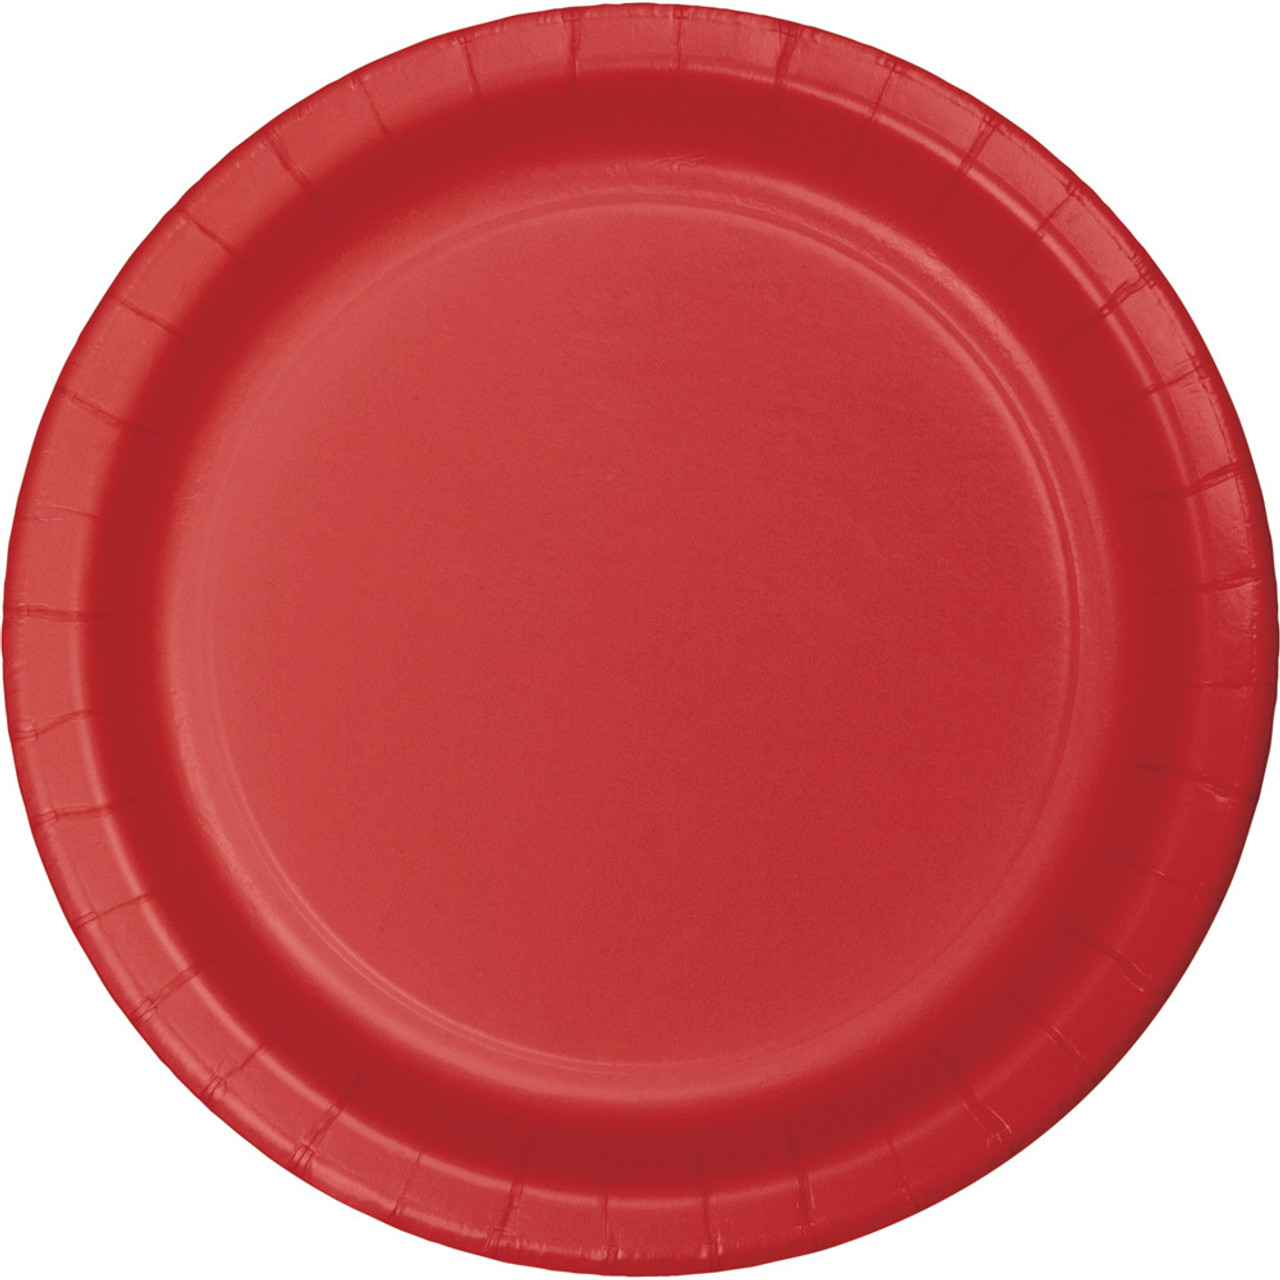 Club Pack of 240 Classic Red Disposable Paper Party Banquet Dinner Plates 9\  - 31381142  sc 1 st  Christmas Central & Club Pack of 240 Classic Red Disposable Paper Party Banquet Dinner ...